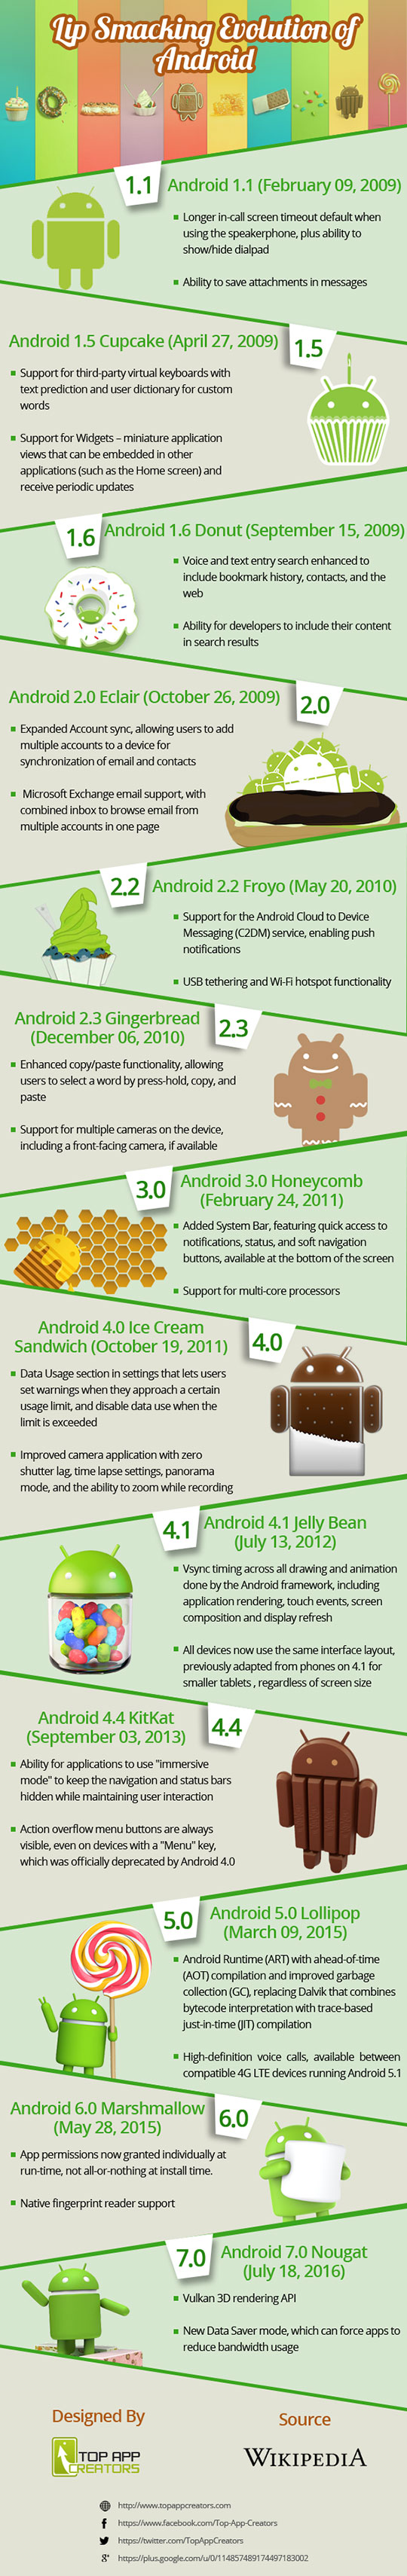 Android Evolution - Lip Smacking Evolution Of Android (Infographic)